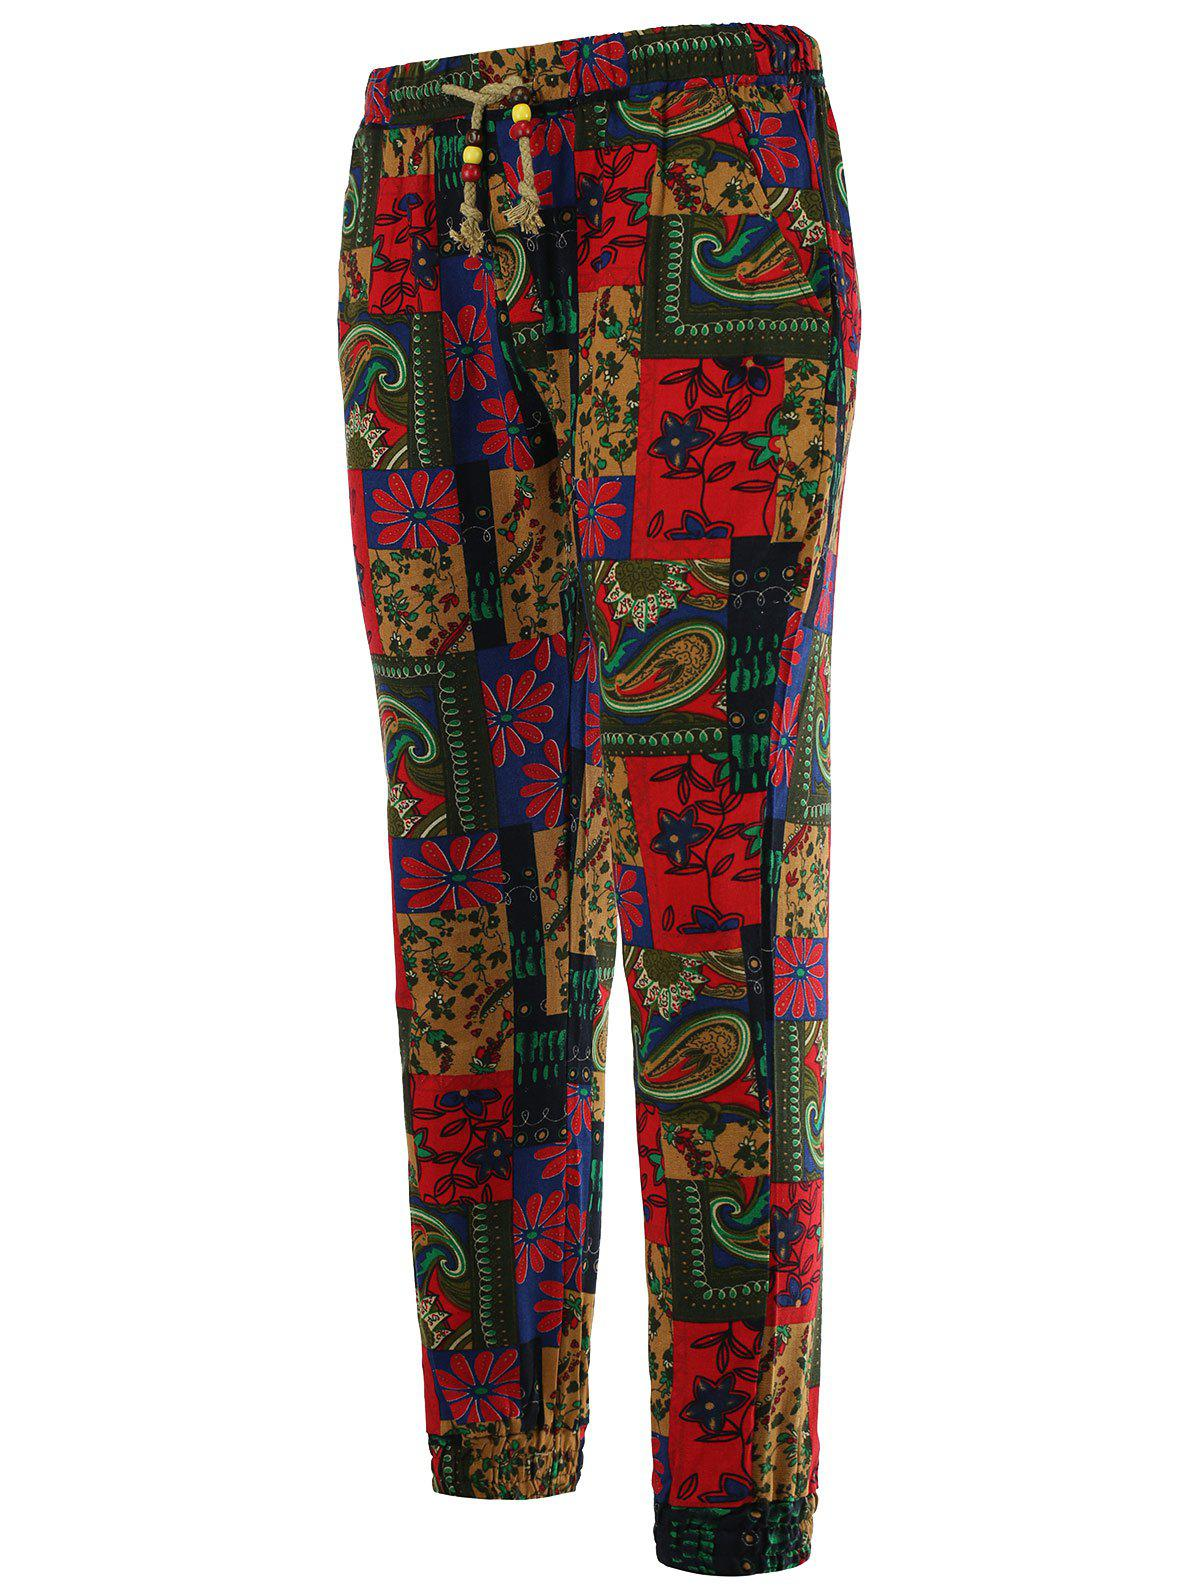 Ethnic Style Paisley Print Lace-Up Beam Feet Cotton+Linen Men's Pants - COLORMIX 2XL